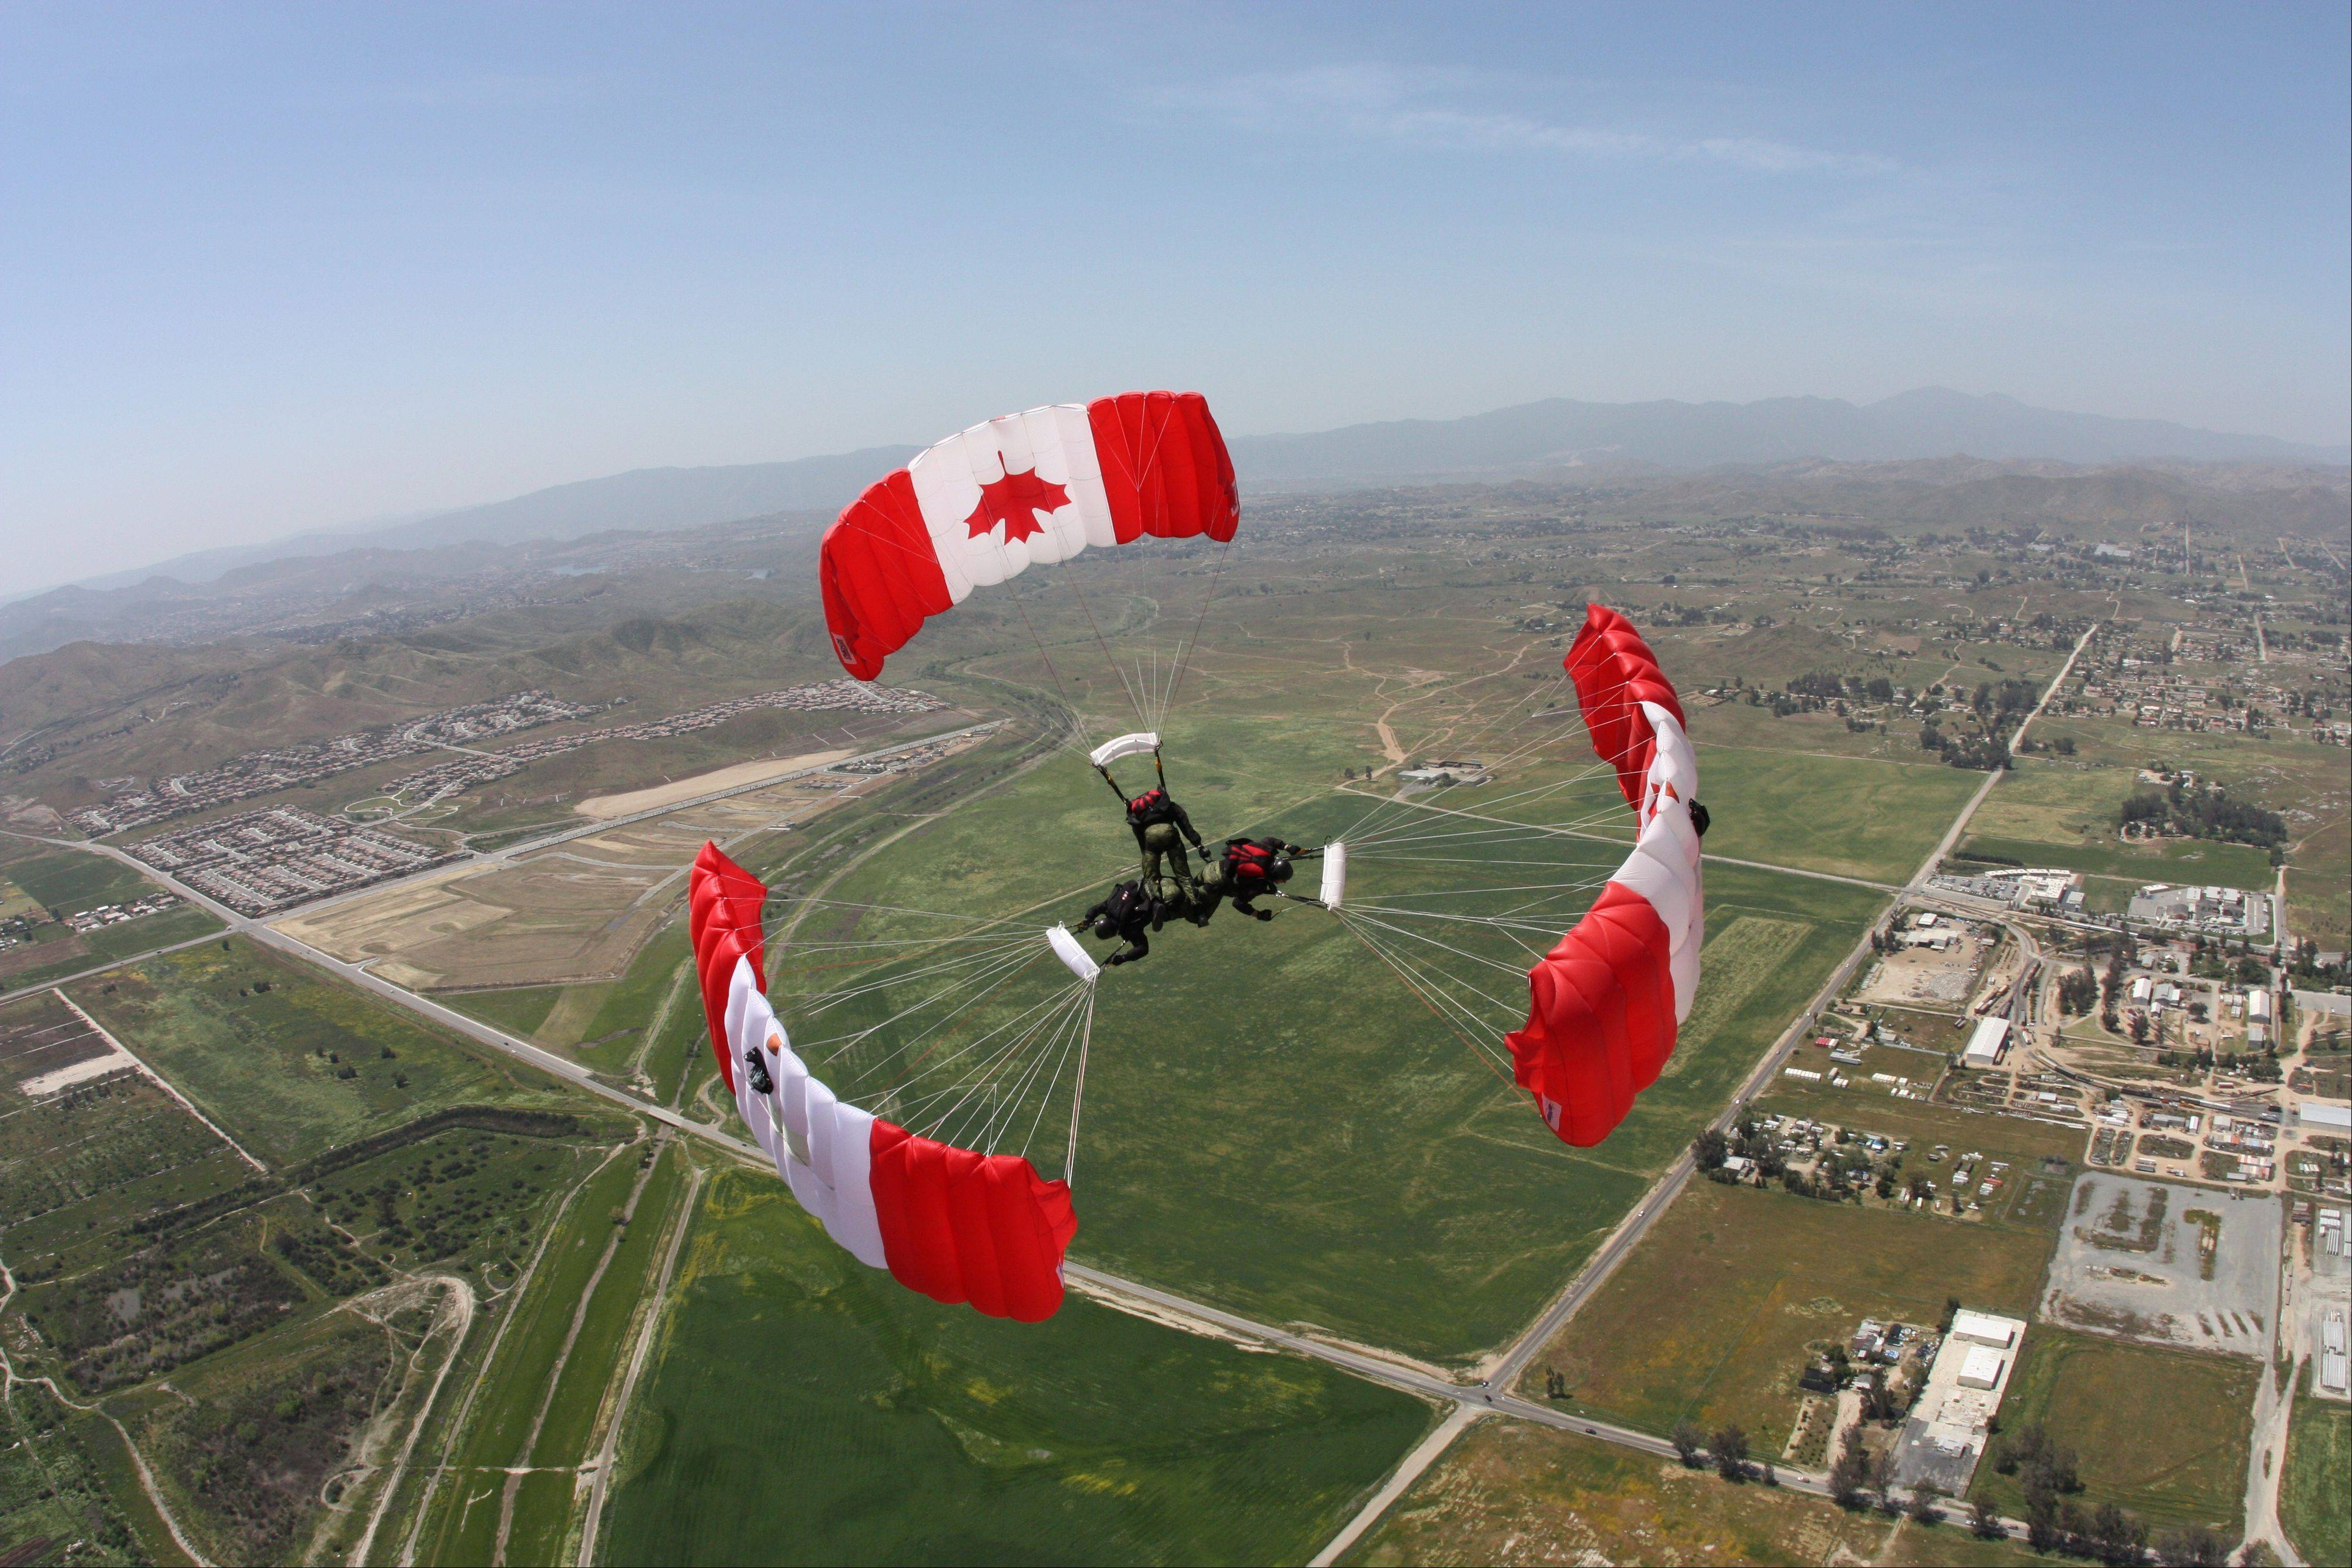 The world-renowned Canadian Skyhawks parachute team will be part of the EAA AirVenture in Oshkosh, Wis.